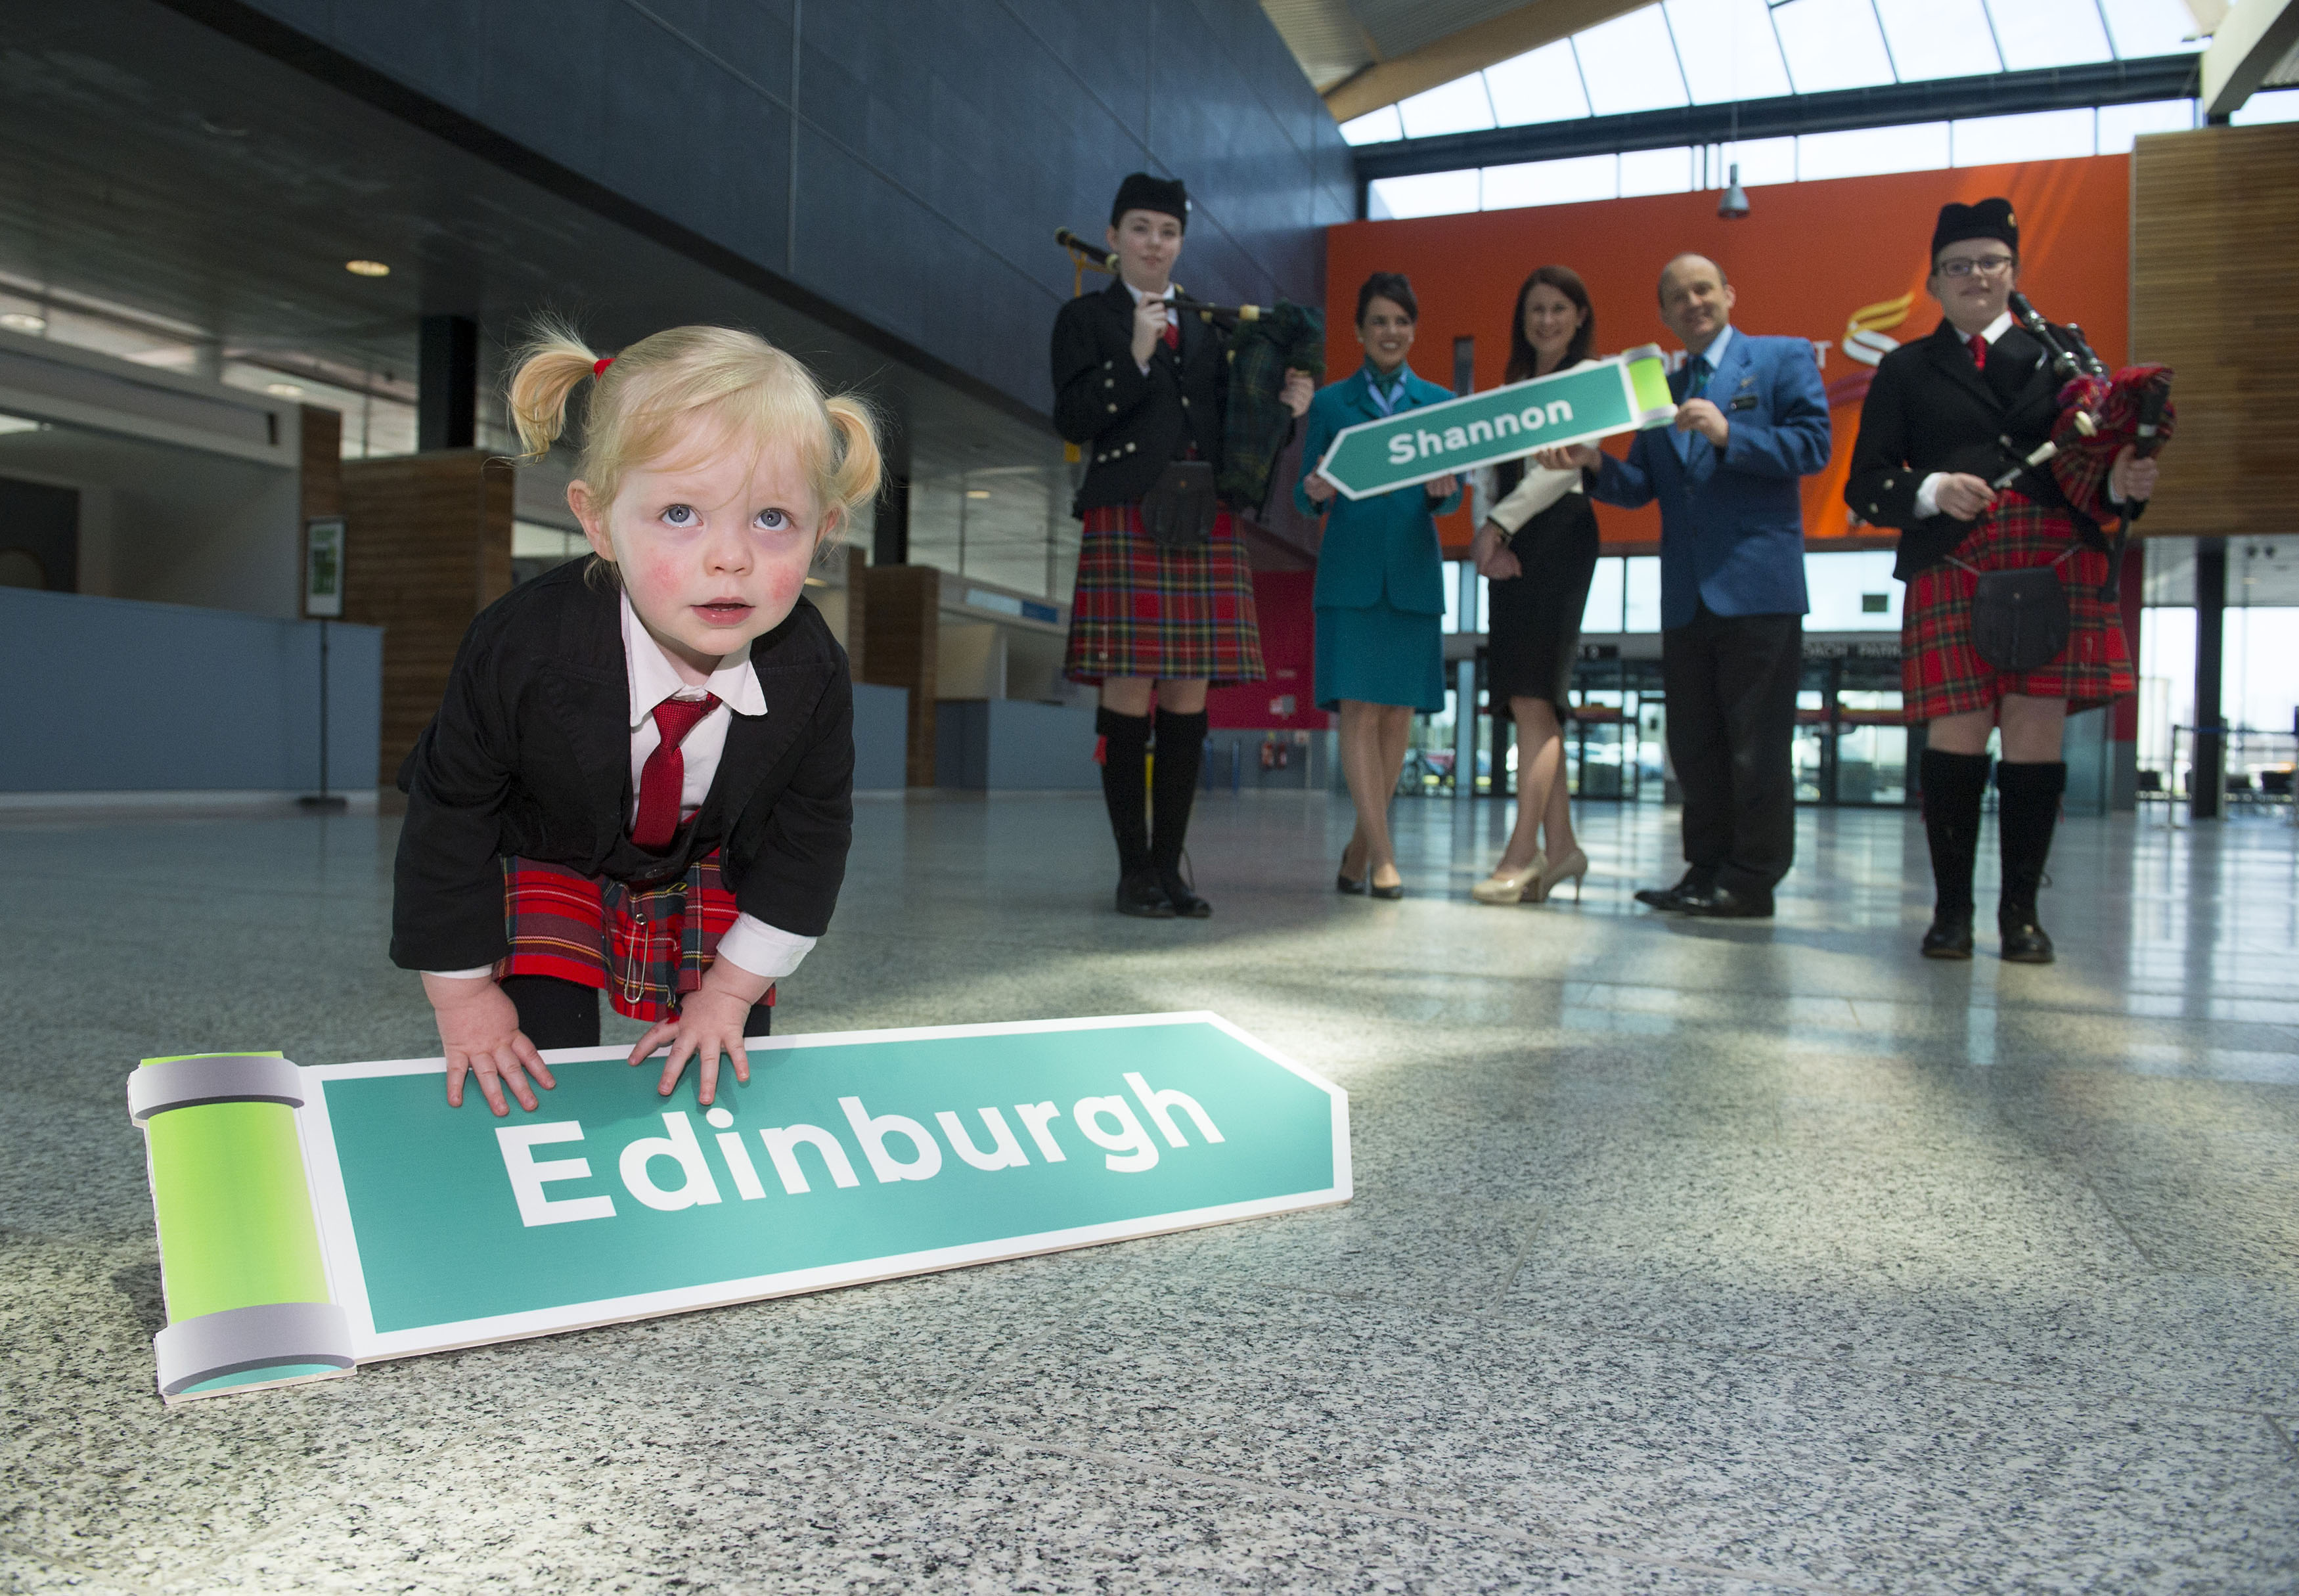 15/03/2016 REPRO FREE Pictured at the Aer Lingus Regional announcement of their Shannon to Edinburgh route are Aer Lingus Regional cabin crew Amy Scott, left, and Calvin Long, right, along with Shannon Group acting CEO Mary Considine and CBS Sexton Street Pipe Band members Niamh Hickey aged 15, left, Aoife McDarby aged 12, right, and Clodagh Purcell, aged 2. Picture credit: Diarmuid Greene/Fusionshooters -  Aer Lingus Regional will operate six flights per week – every day except Saturday. -  New route will add 35,000 seats for Shannon Airport in 2016, rising to 45,000 per annum from 2017. -  Edinburgh based customers can avail of transatlantic pre-clearance services in Shannon. -  Flights from €29.99 now available for booking on aerlingus.com. Aer Lingus Regional, operated by Stobart Air, today launched the first flight on its new route from Shannon to Edinburgh.  The new route will operate six times weekly with fares from €29.99 one-way including taxes and charges. It will result in an additional 35,000 seats for Shannon Airport in 2016, rising to 45,000 per annum from 2017. Edinburgh passengers flying to Shannon will be able to take advantage of Aer Lingus's transatlantic services to New York and Boston.  Shannon Airport offers U.S. bound passengers immigration and customs preclearance services, meaning that there are no border checks upon arrival in the United States, thereby avoiding potentially long queuing times.  Flights are available for booking on aerlingus.com.